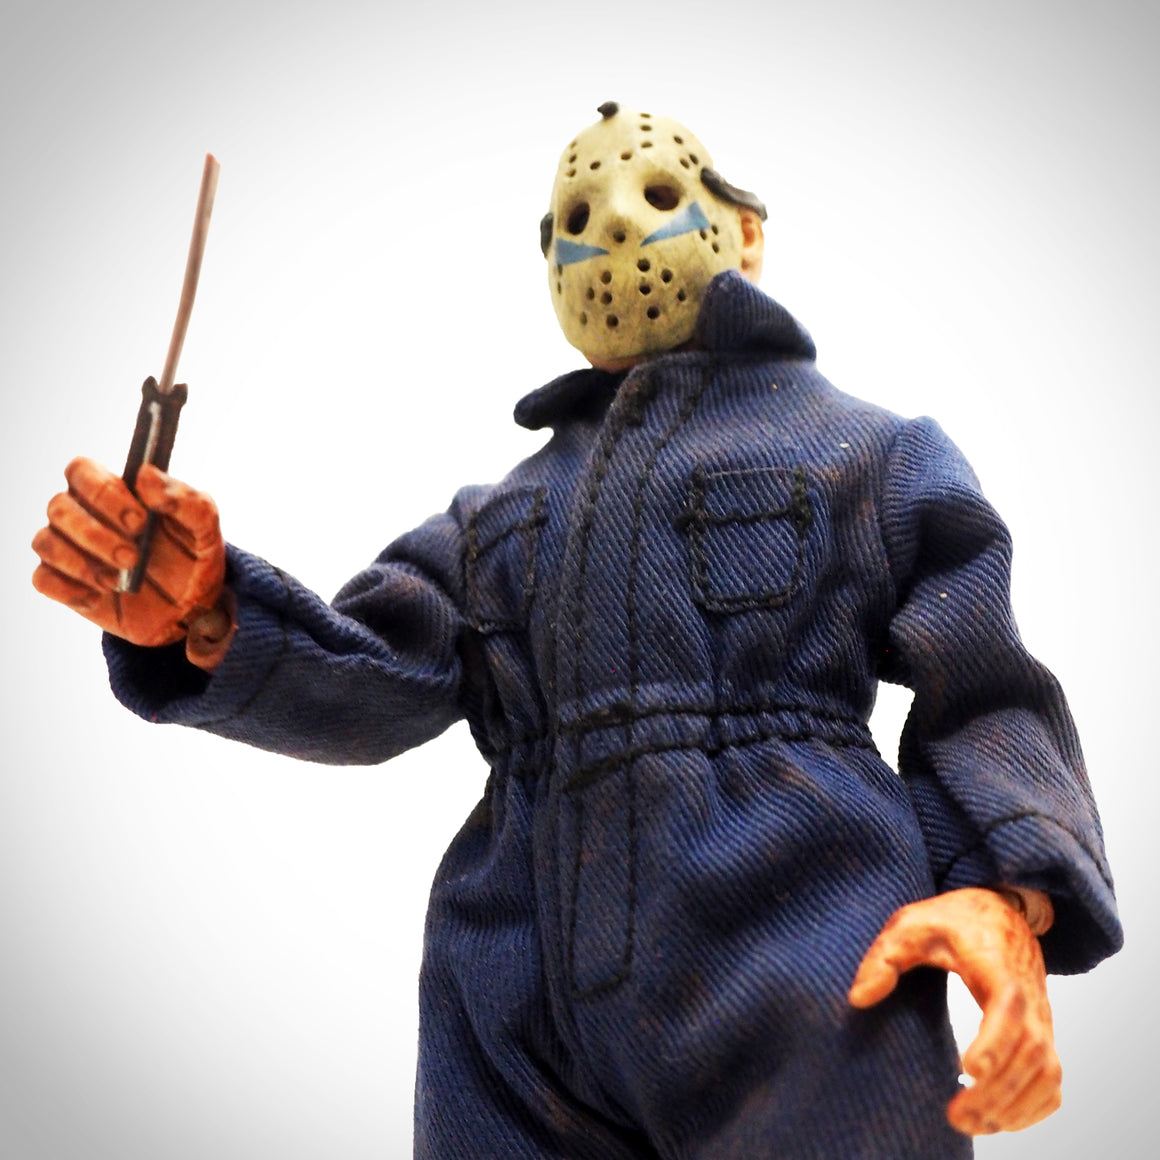 FRIDAY THE 13TH - JASON Vintage 2004 Statue